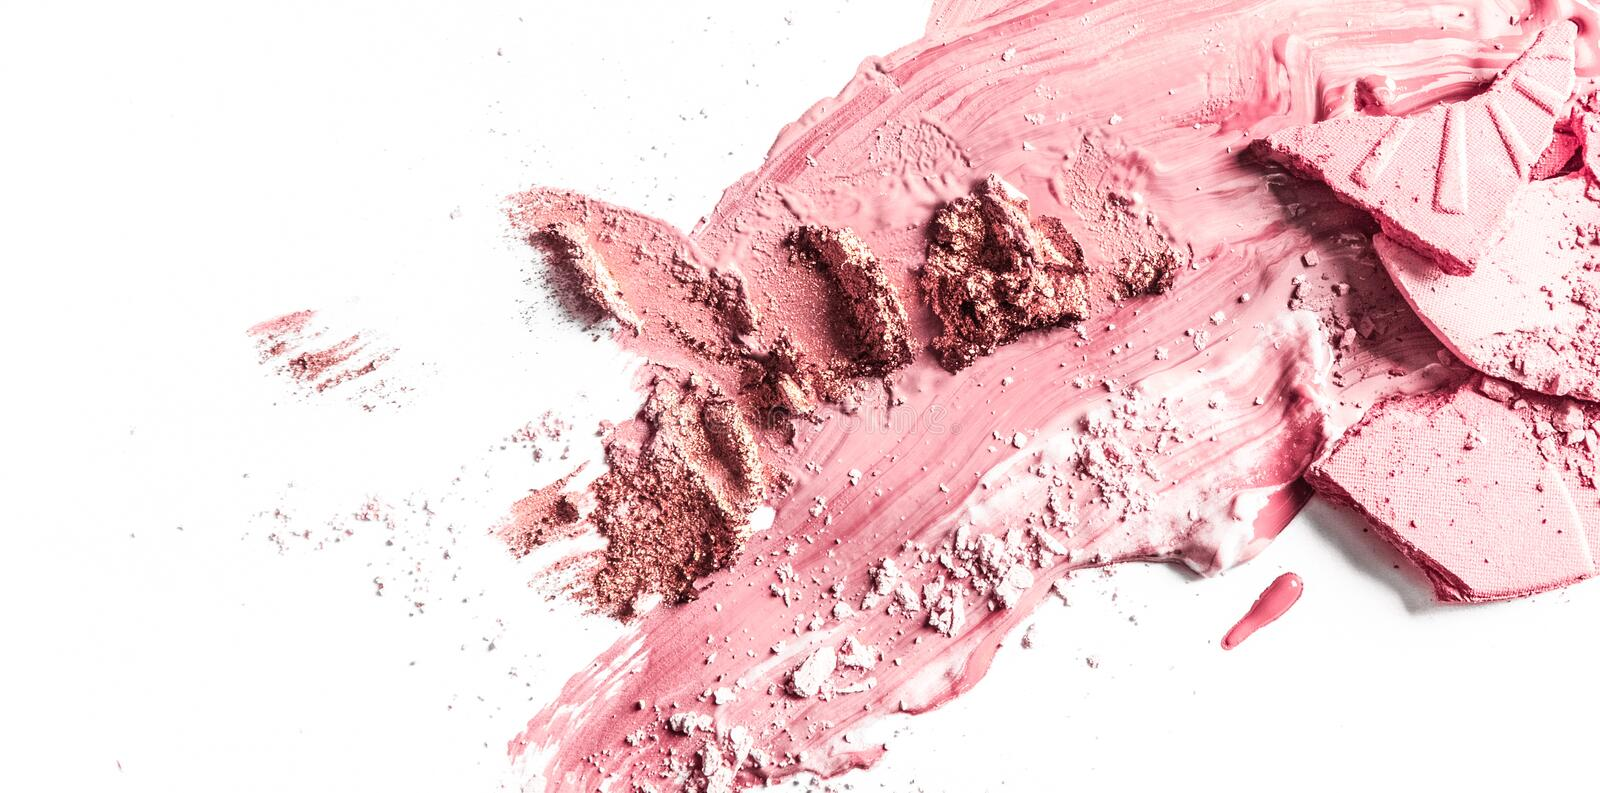 Crushed eyeshadow, powder and liquid foundation close-up isolated on white background. Beauty texture, cosmetic product and art of make-up concept - Crushed stock photography